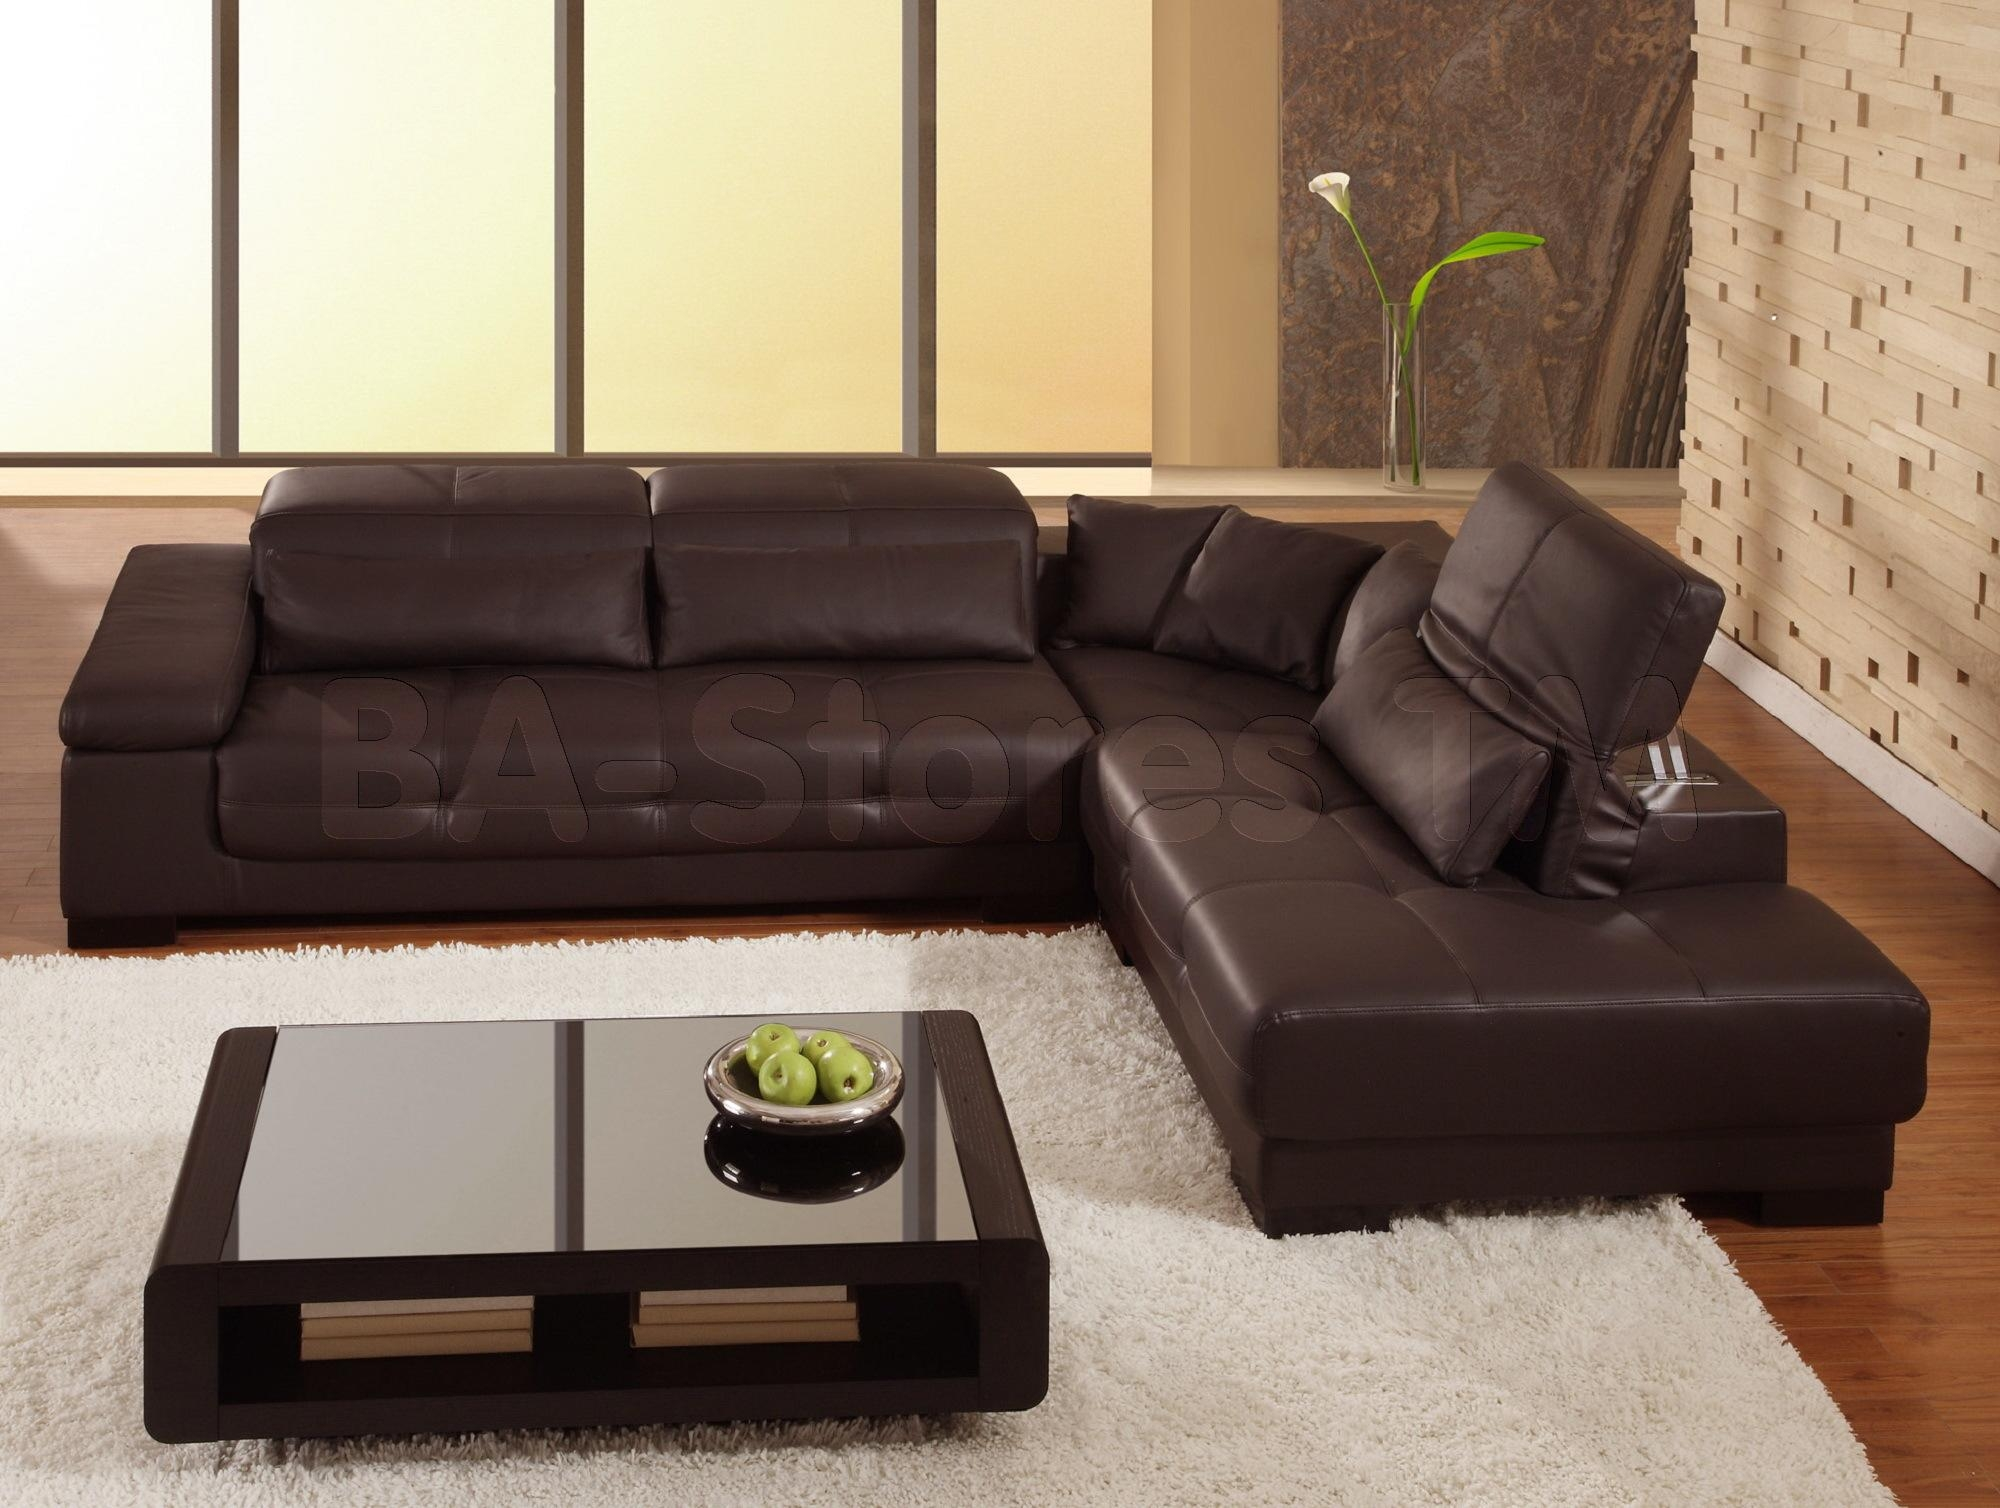 Clearance Leather Sectional Sofas | Tehranmix Decoration Intended For Stacey Leather Sectional (Image 2 of 20)